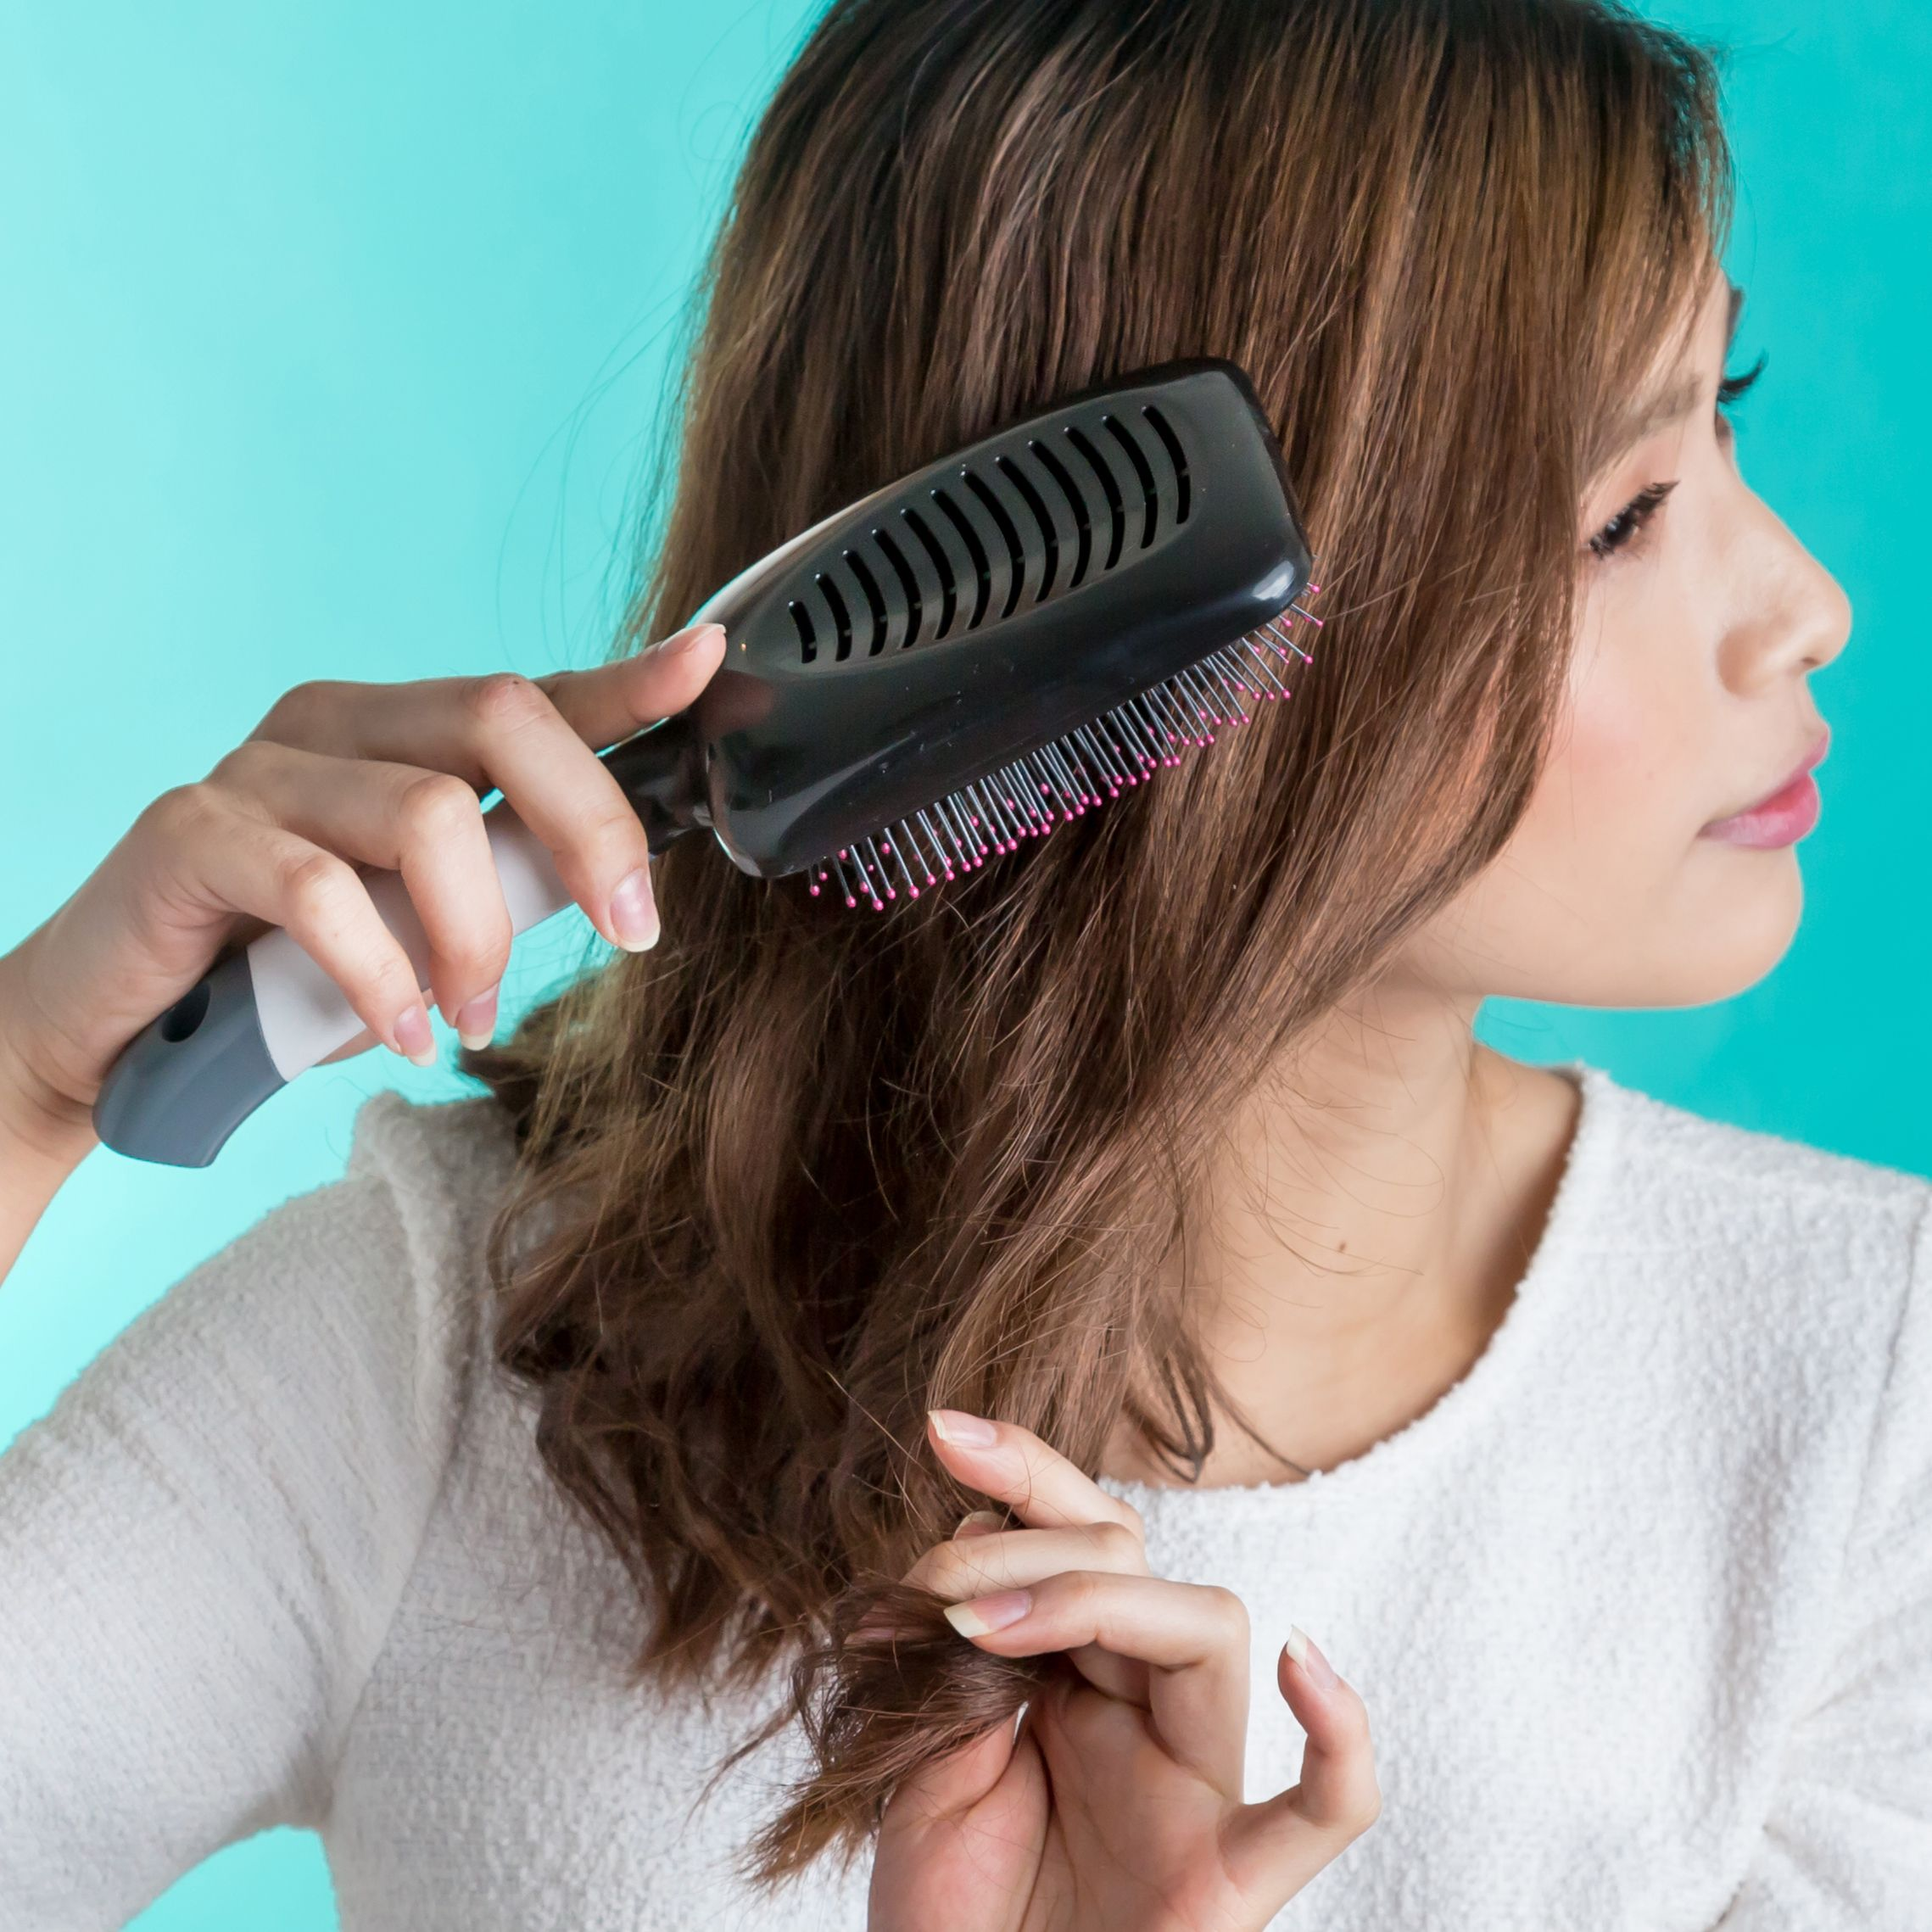 Beauty Hair brush, Smooth hair, Hair care routine